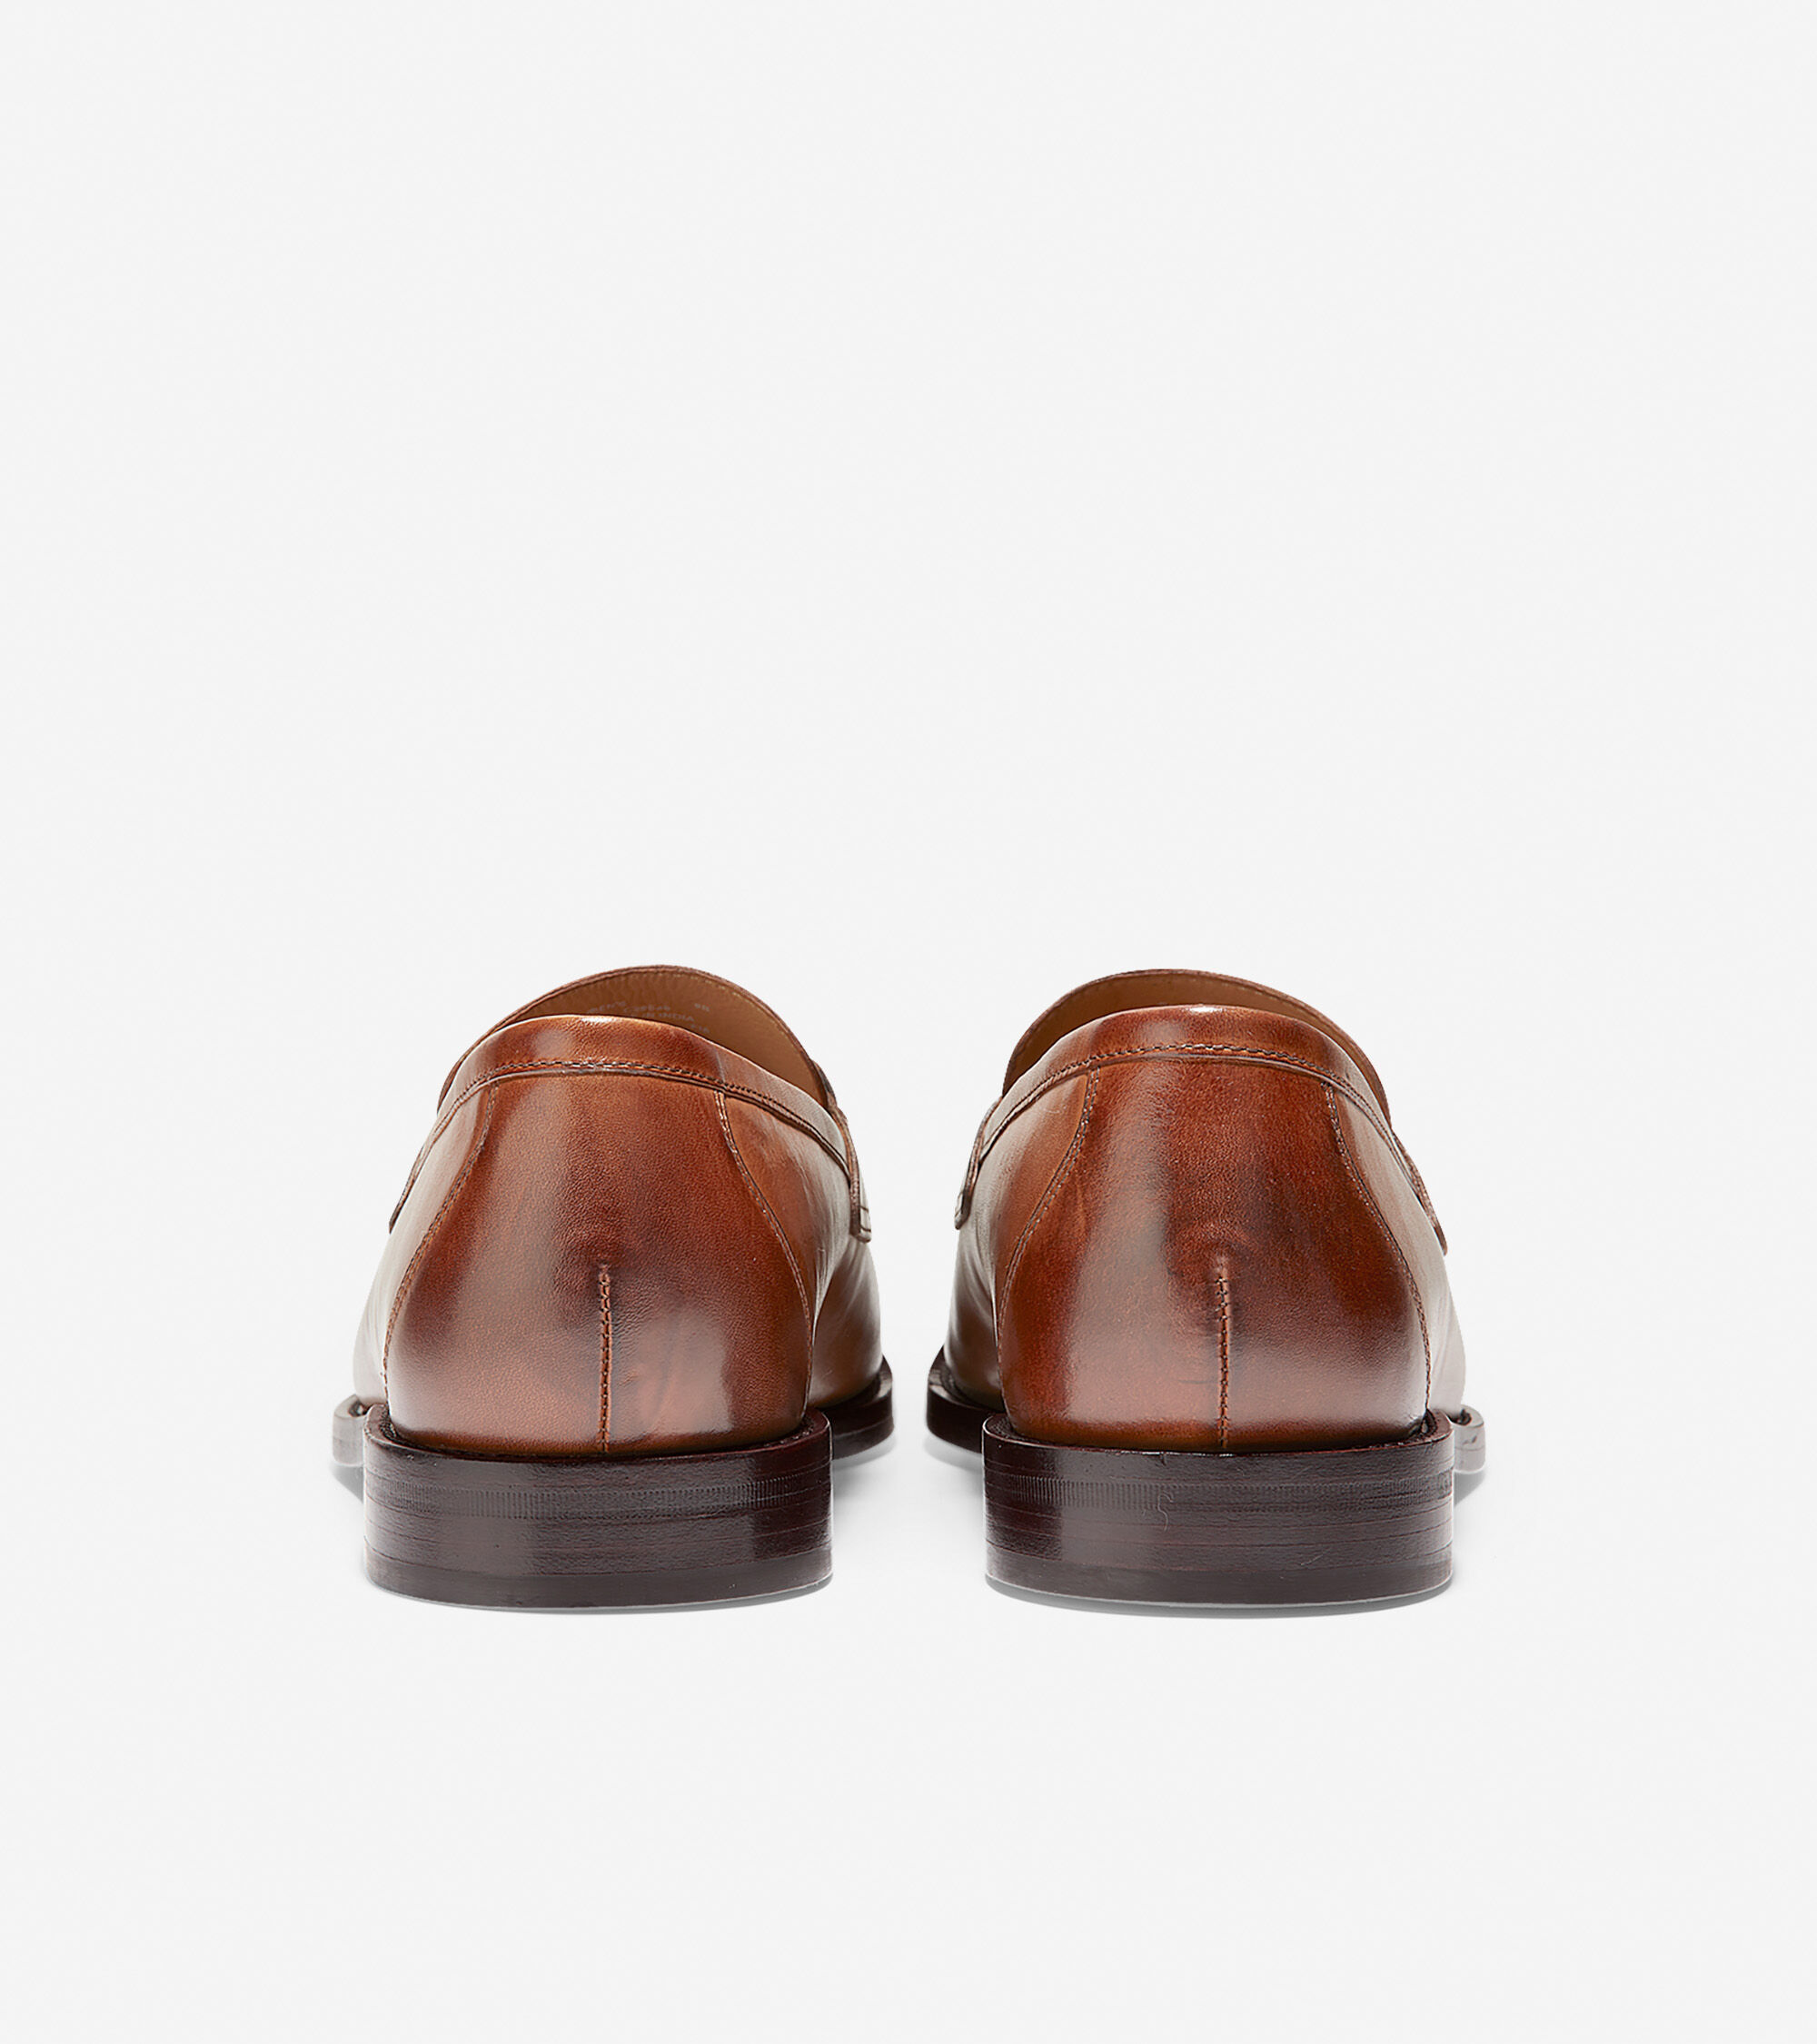 99d58b93286 ... Cole Haan American Classic Kneeland Bit Loafer ...